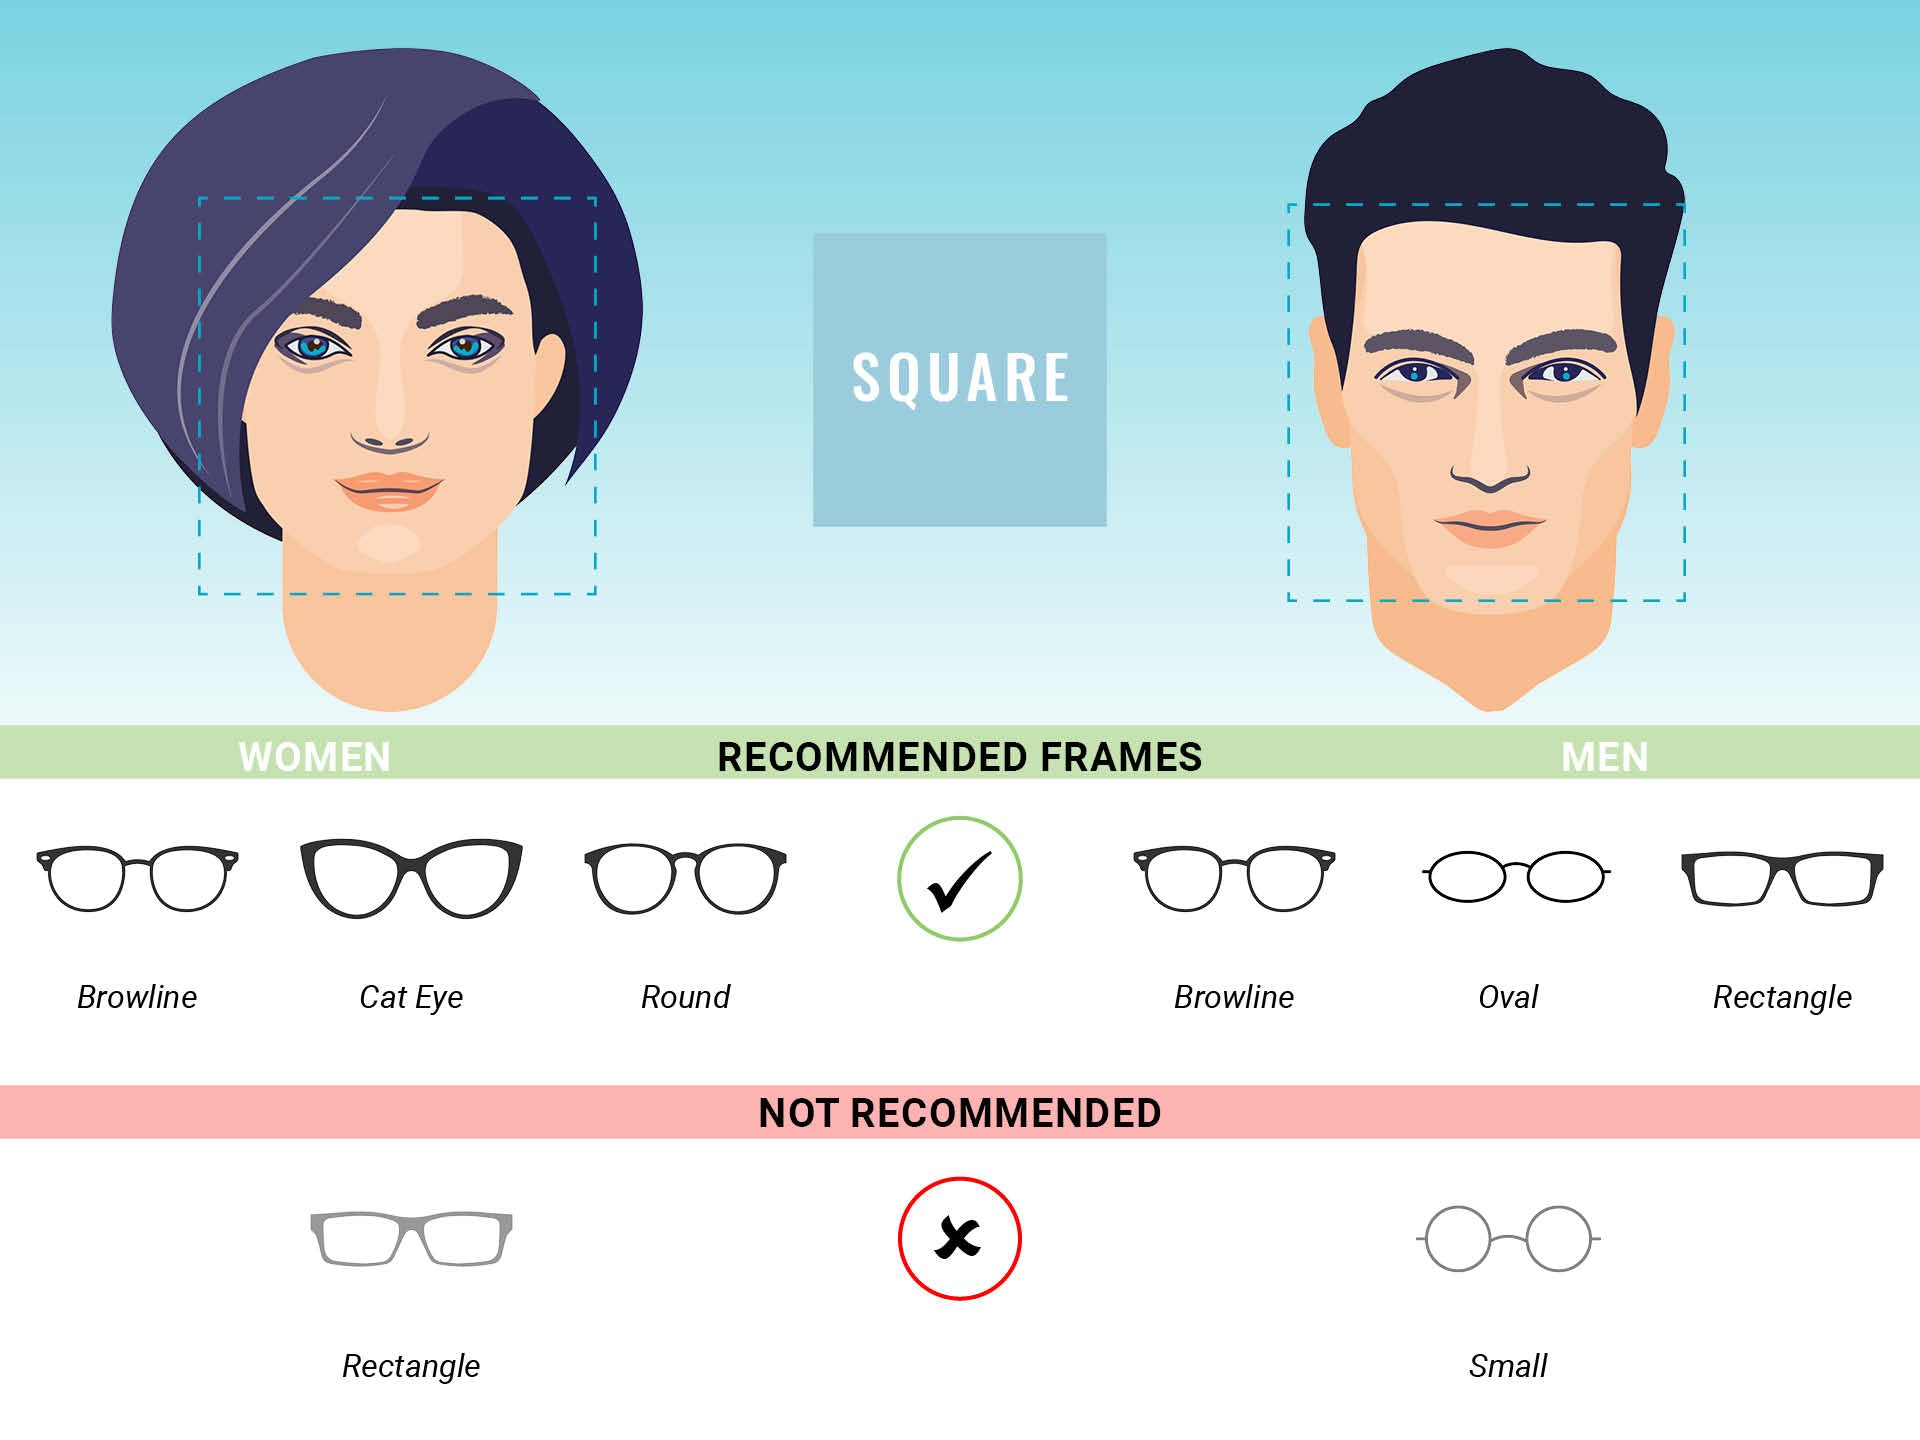 Eyeglass frame recommendations for square face shapes for men and women